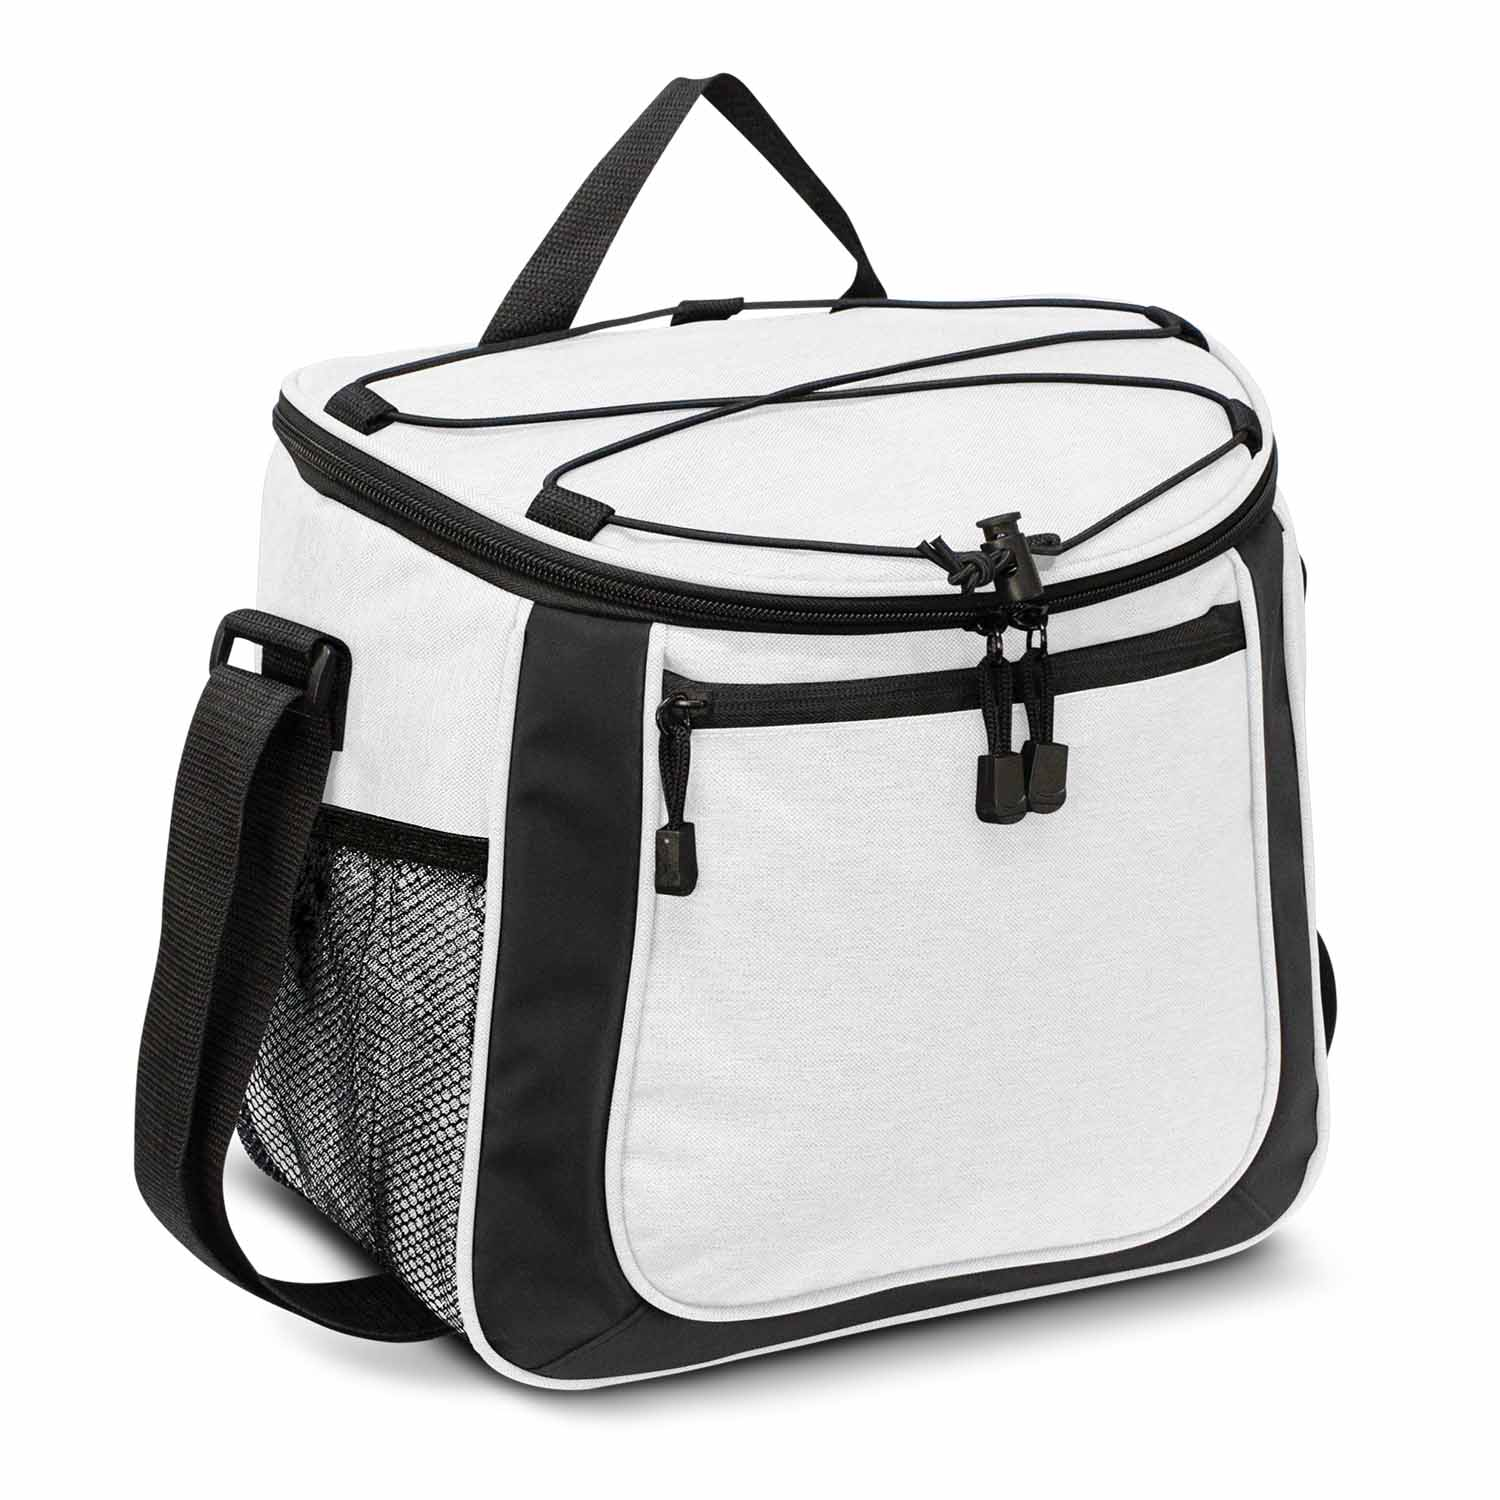 Promotional White Aspiring Cooler Bags in Perth